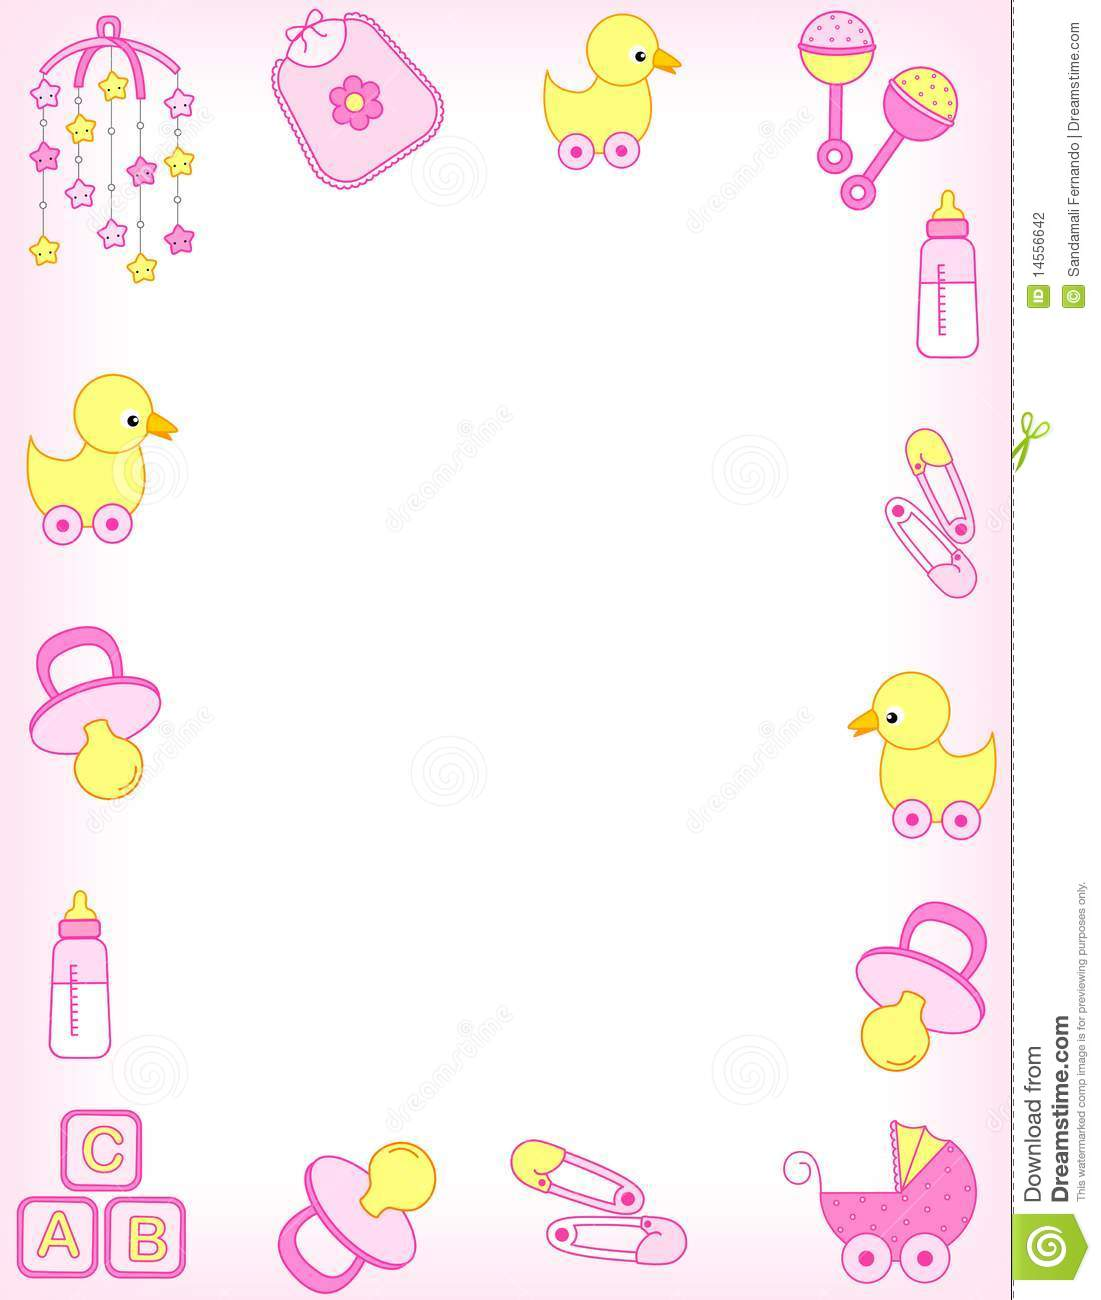 Baby Girl Accessories Border Including C-Baby Girl Accessories Border Including Carriage Safety Pins Pacifier-4